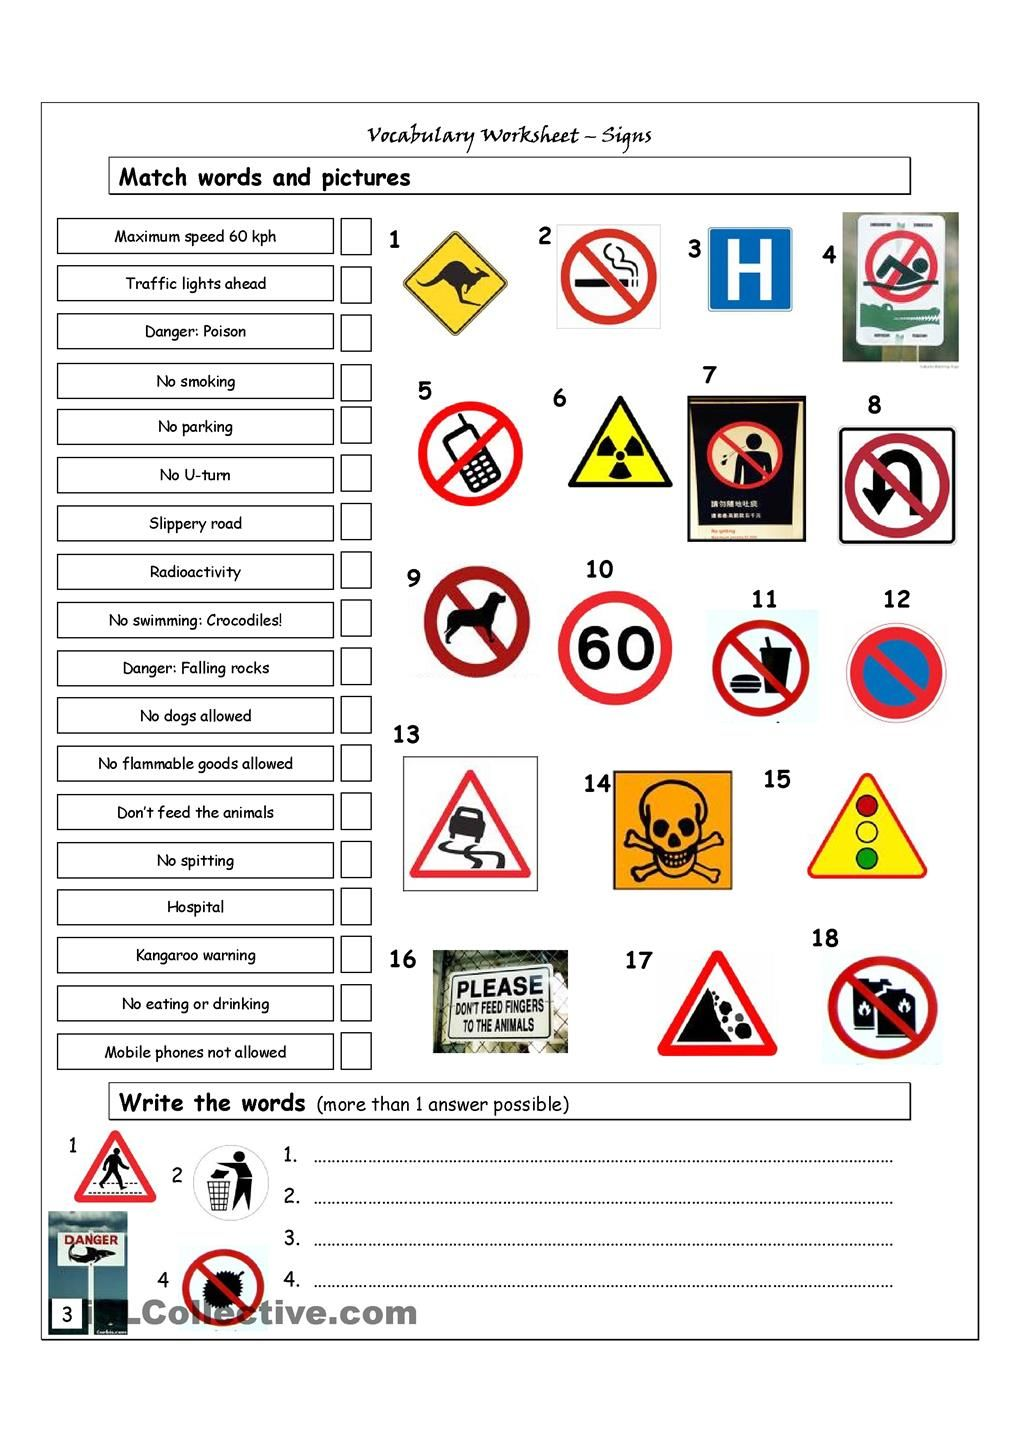 Vocabulary matching worksheet signs teaching tools pinterest vocabulary matching worksheet signs biocorpaavc Image collections